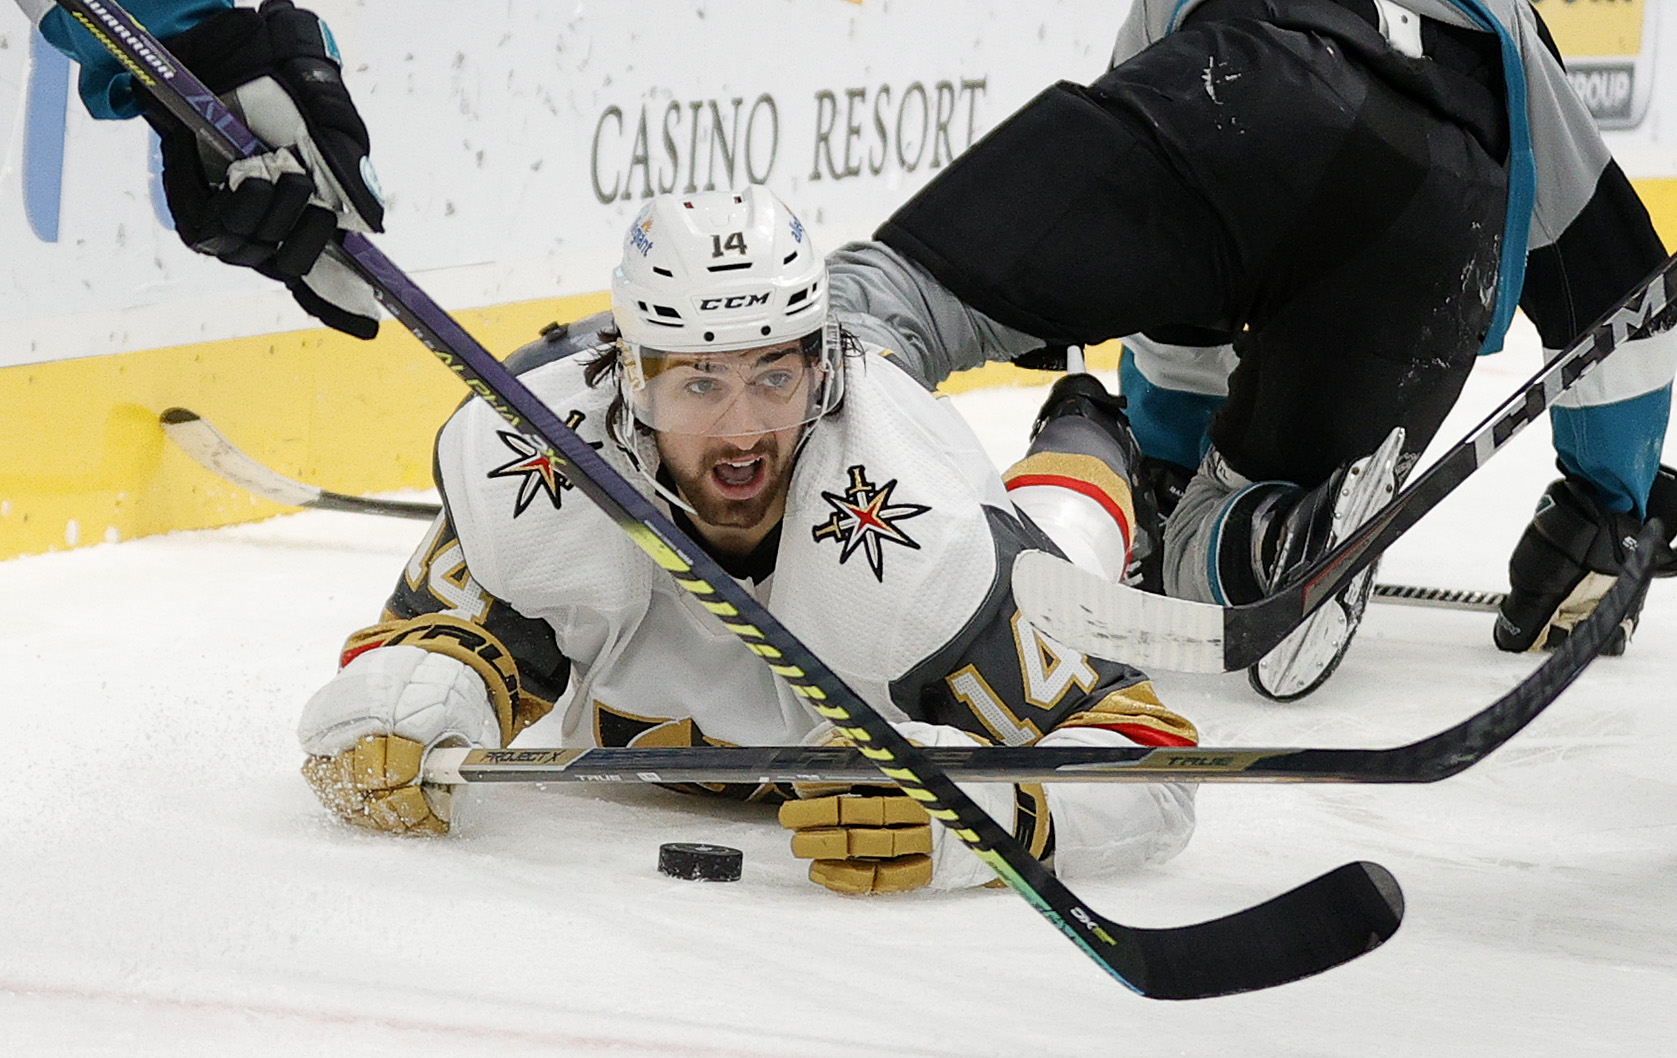 Nicolas Hague #14 of the Vegas Golden Knights goes for the puck while sliding on the ice during the third period against the San Jose Sharks at SAP Center on March 06, 2021 in San Jose, California.